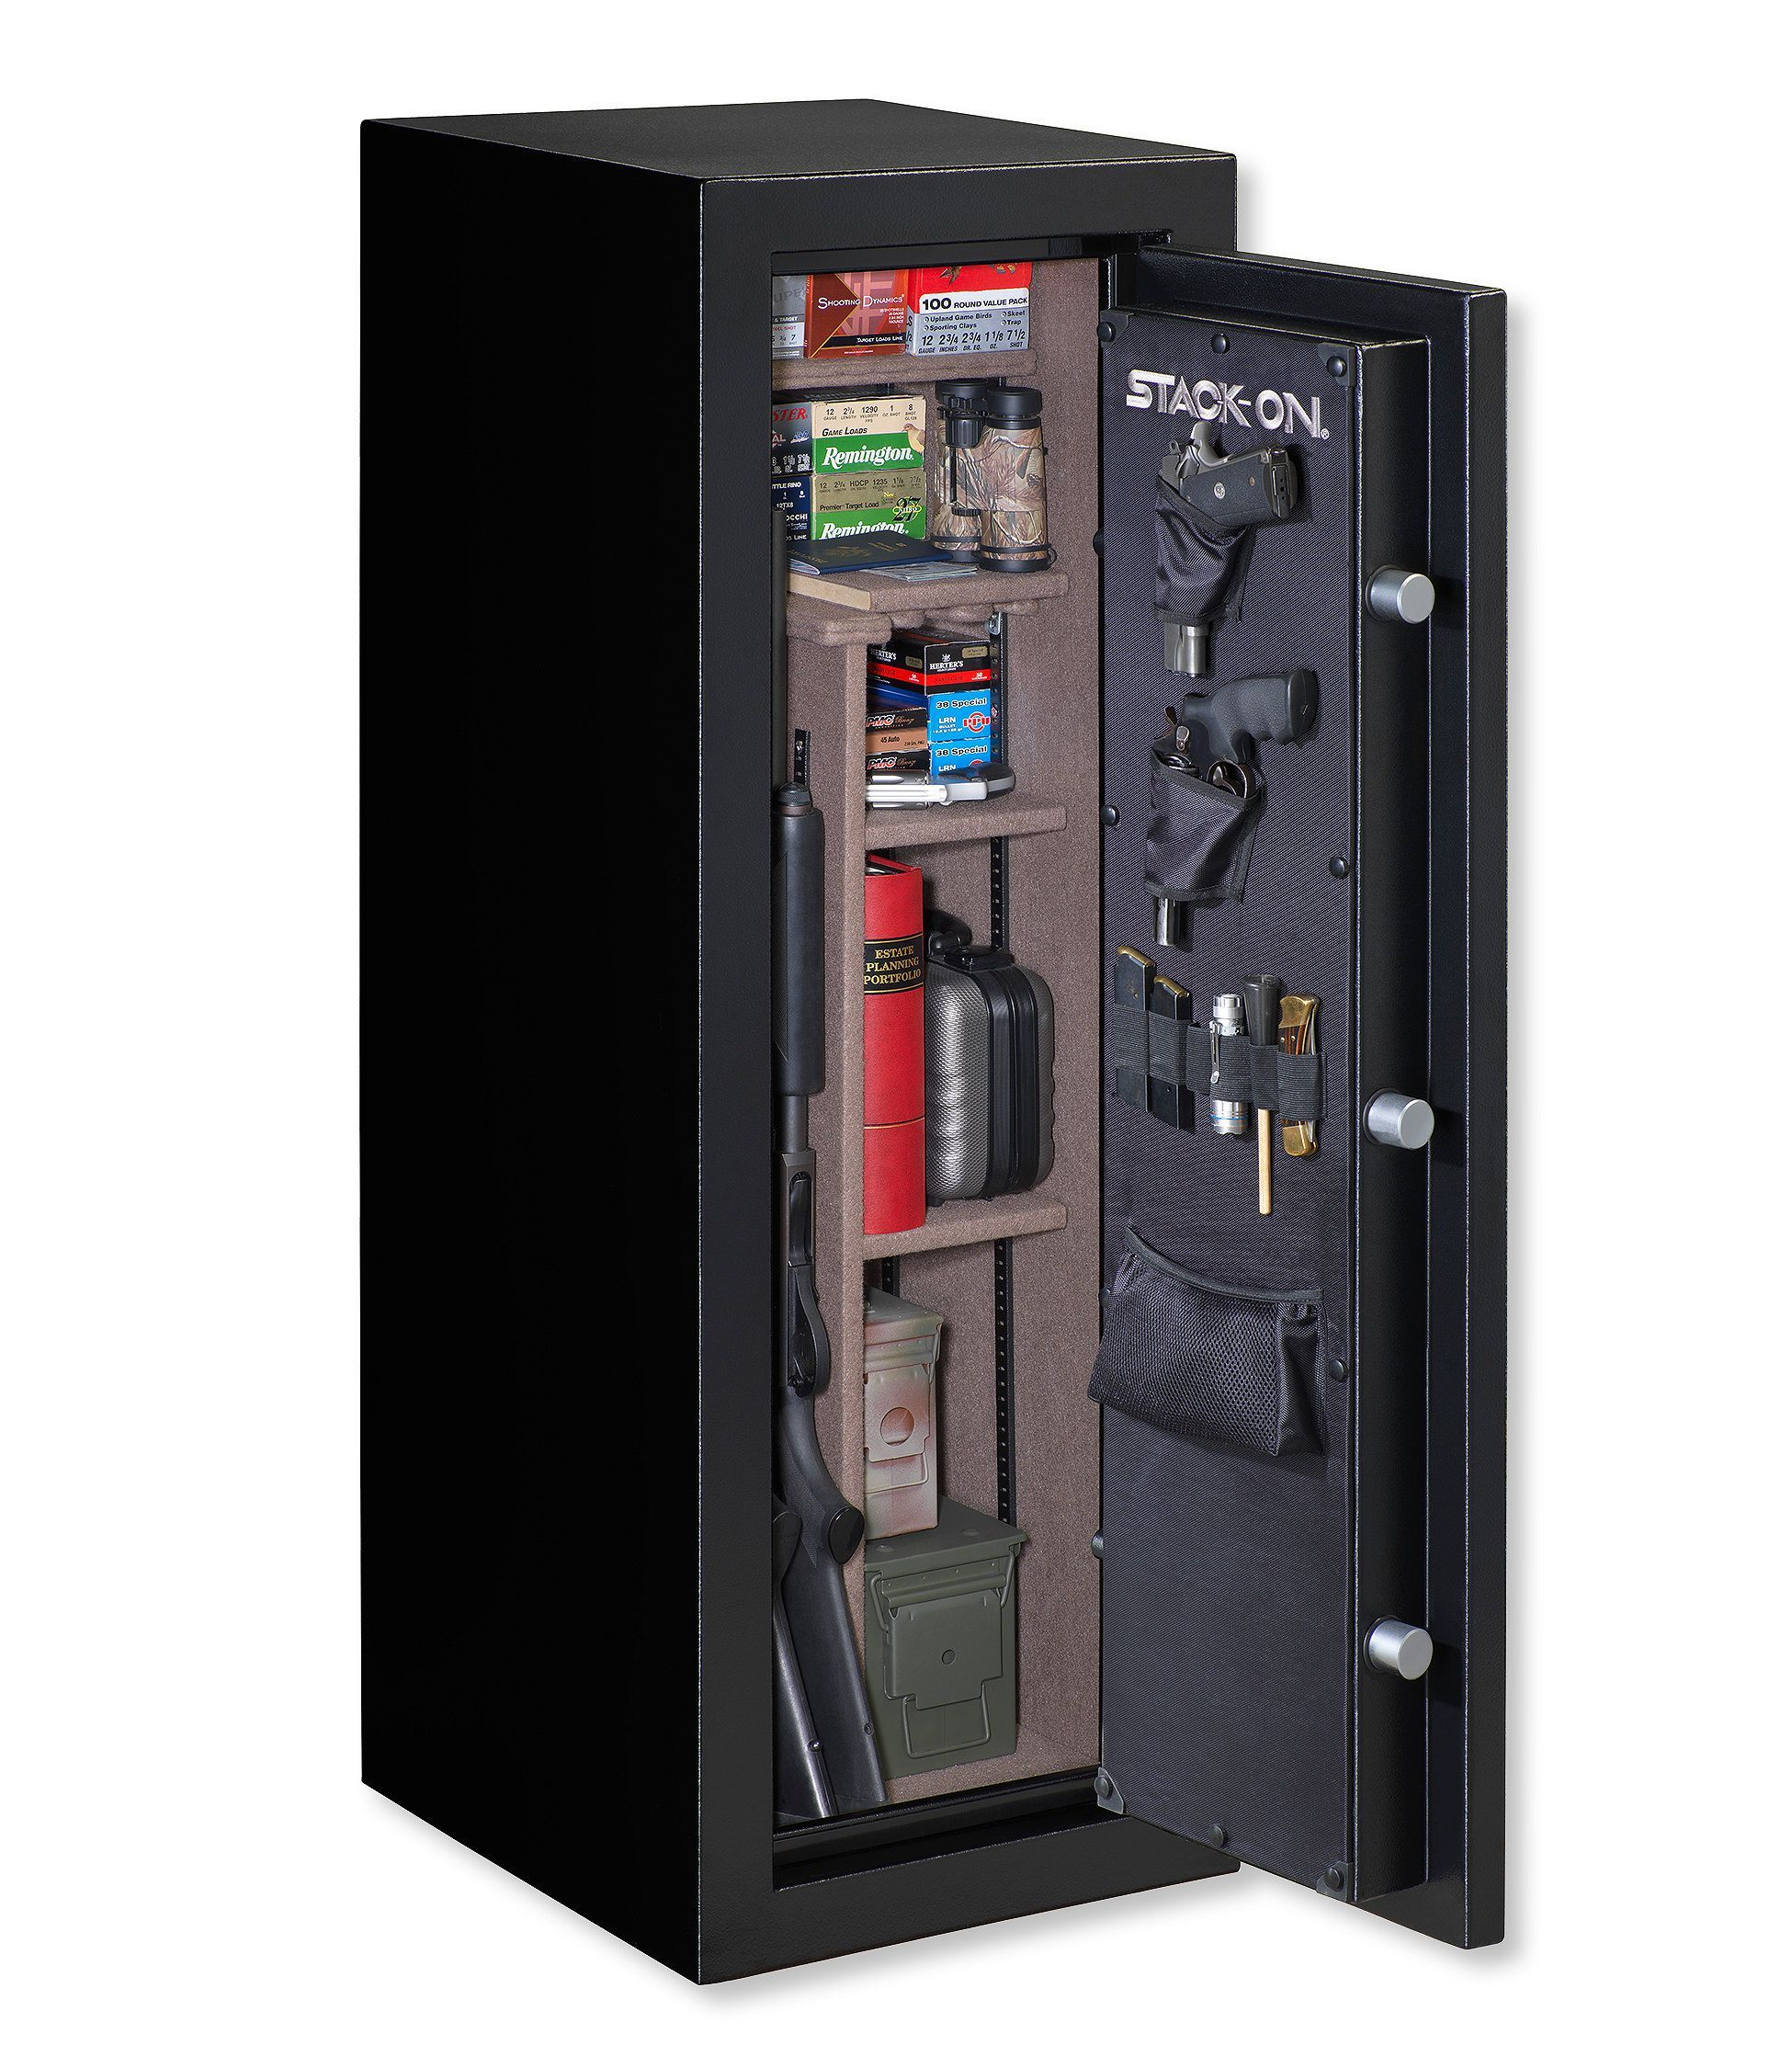 Stack On Armorguard Electronic Gun Safe Products